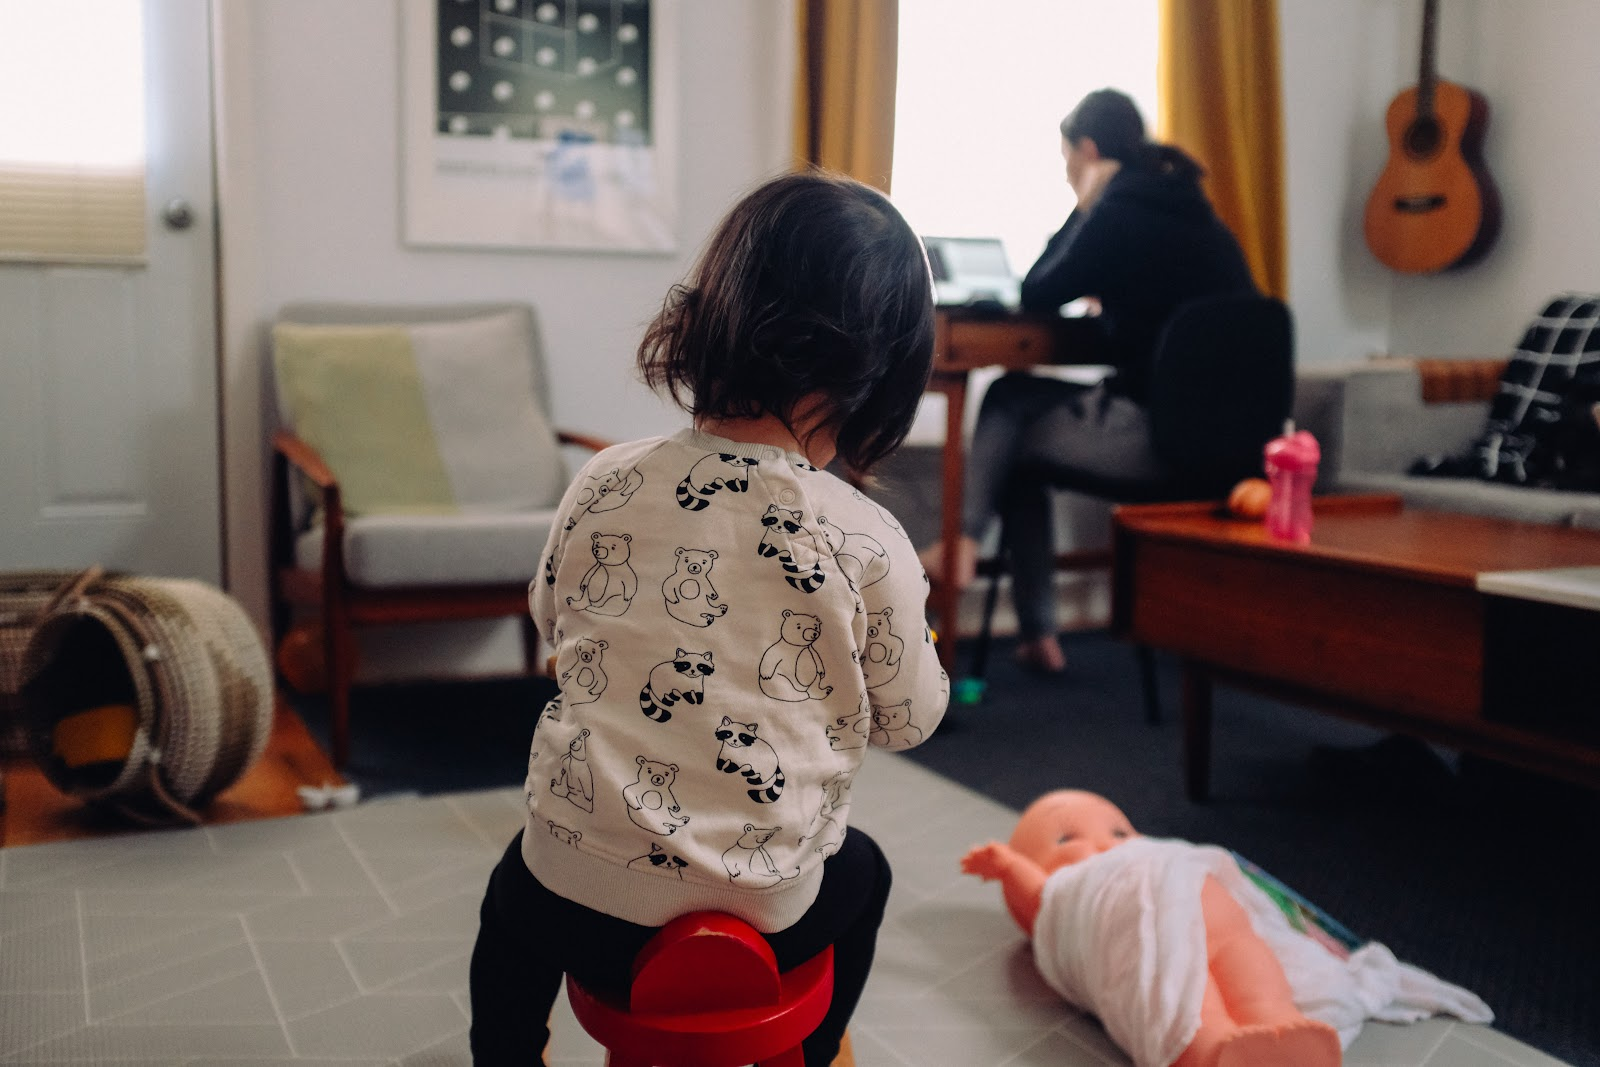 Work from home set up with child and toys in the foreground while parent works in the background; Thanks to Charles Deluvio for sharing their work on Unsplash.